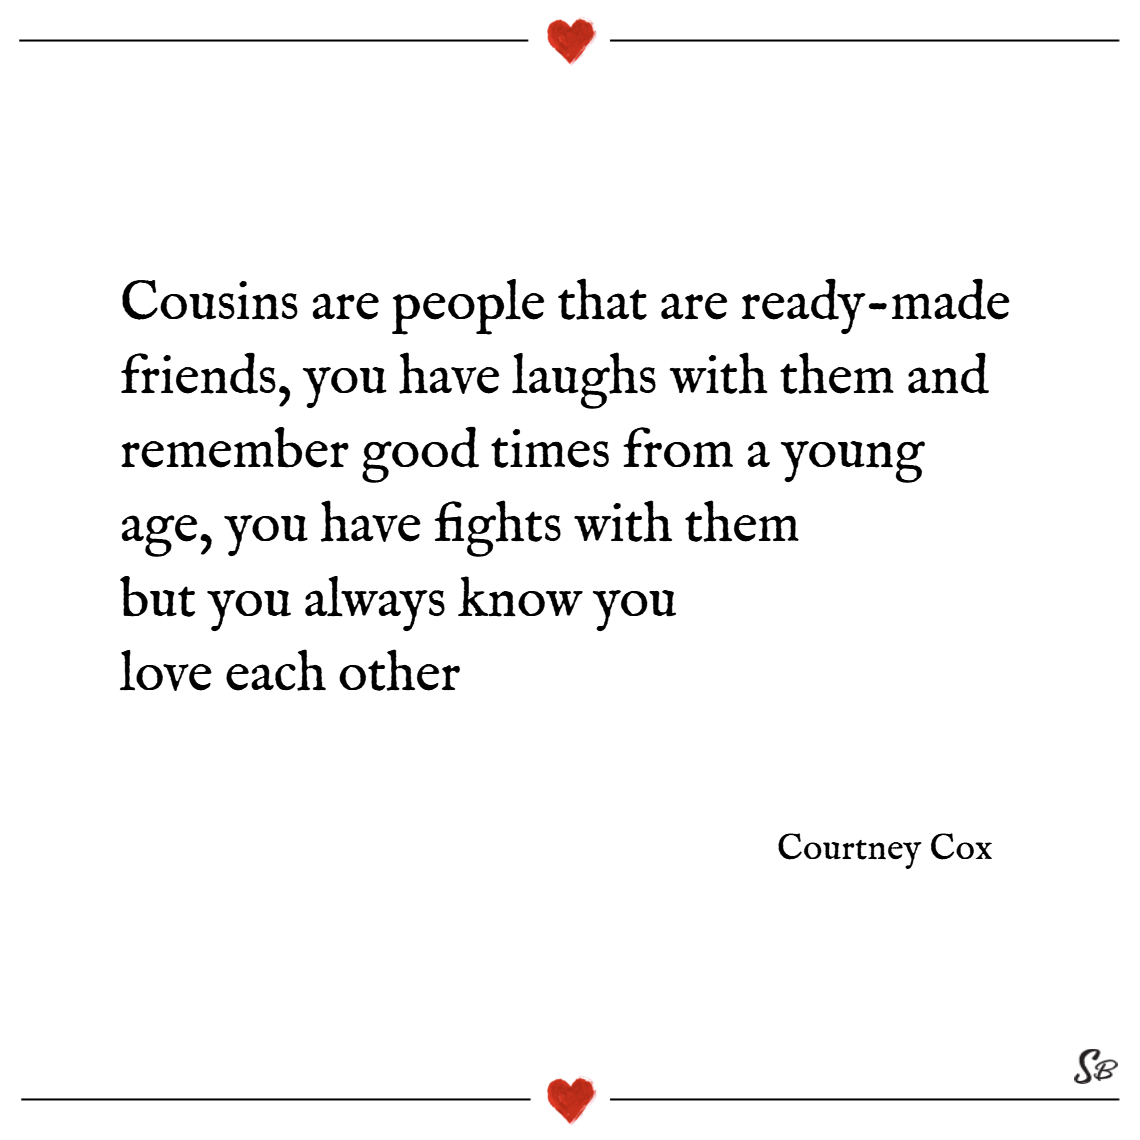 Cousins are people that are ready made friends, you have laughs with them and remember good times from a young age, you have fights with them but you always know you love each other. – courtney cox cousins quotes